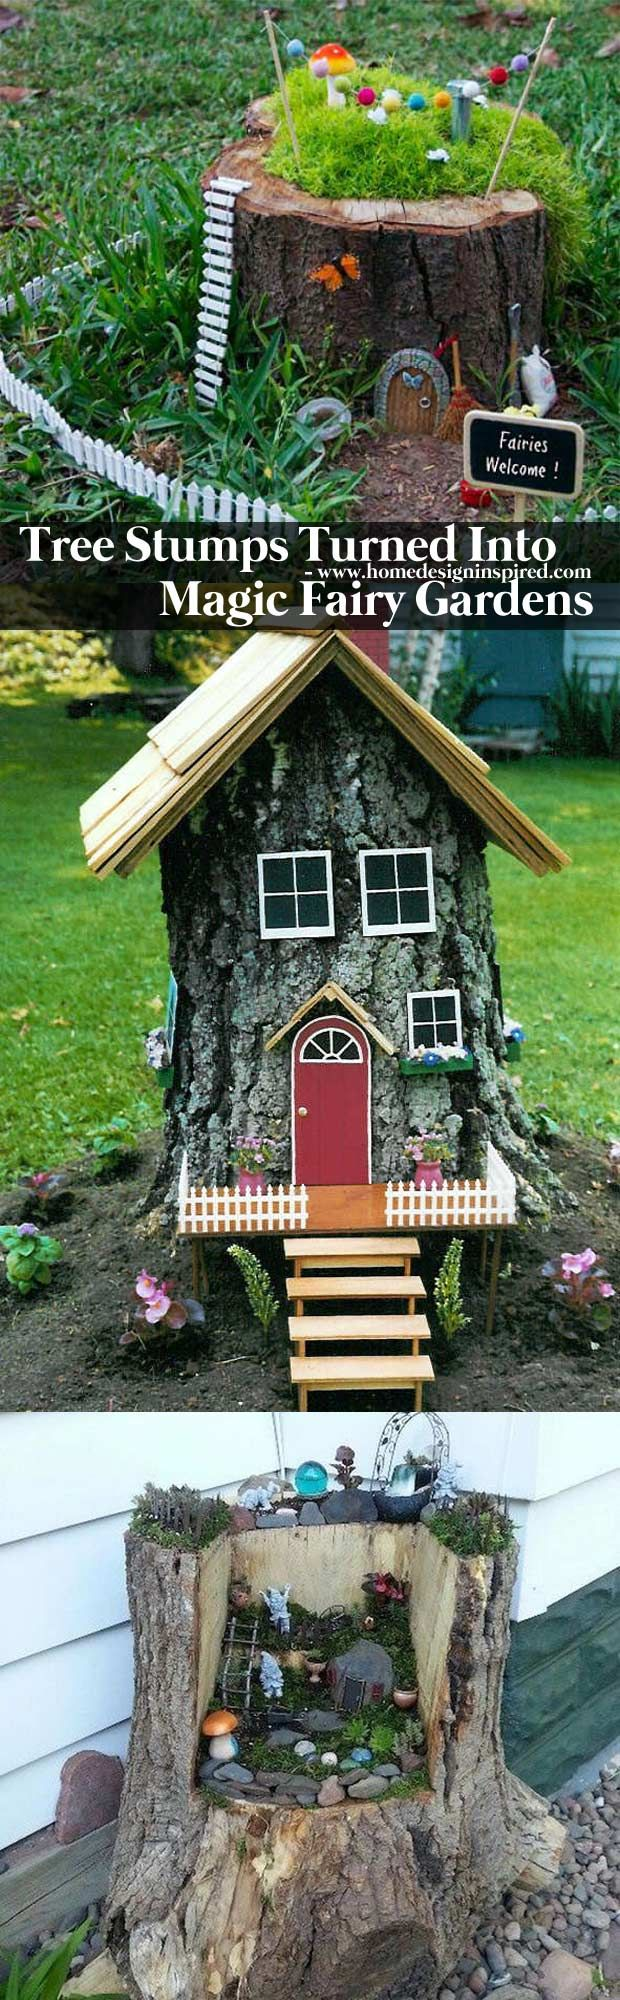 Tree stumps turned into magic fairy houses - 17 Stunning Fairy Gardens Created by Recycled Things